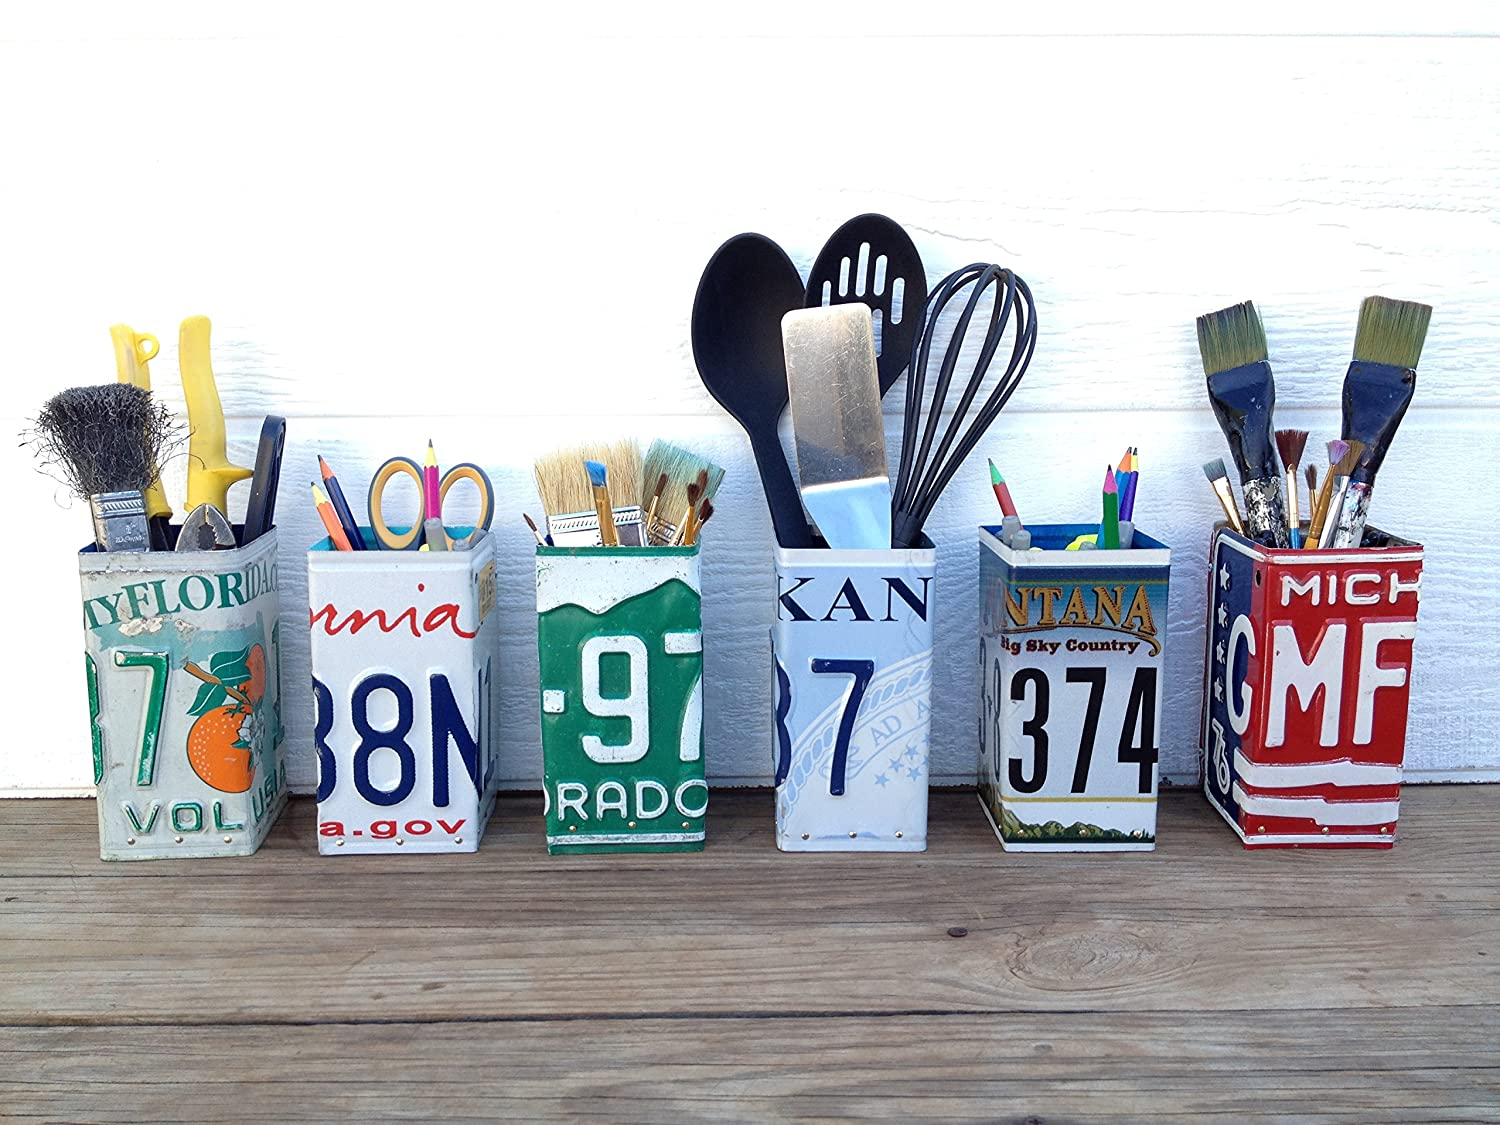 State License Plate Pencil Holder - Home Office Desk Organizer - Upcycled License Plate - Unique Organization Desk Storage - State License Plate Office Storage